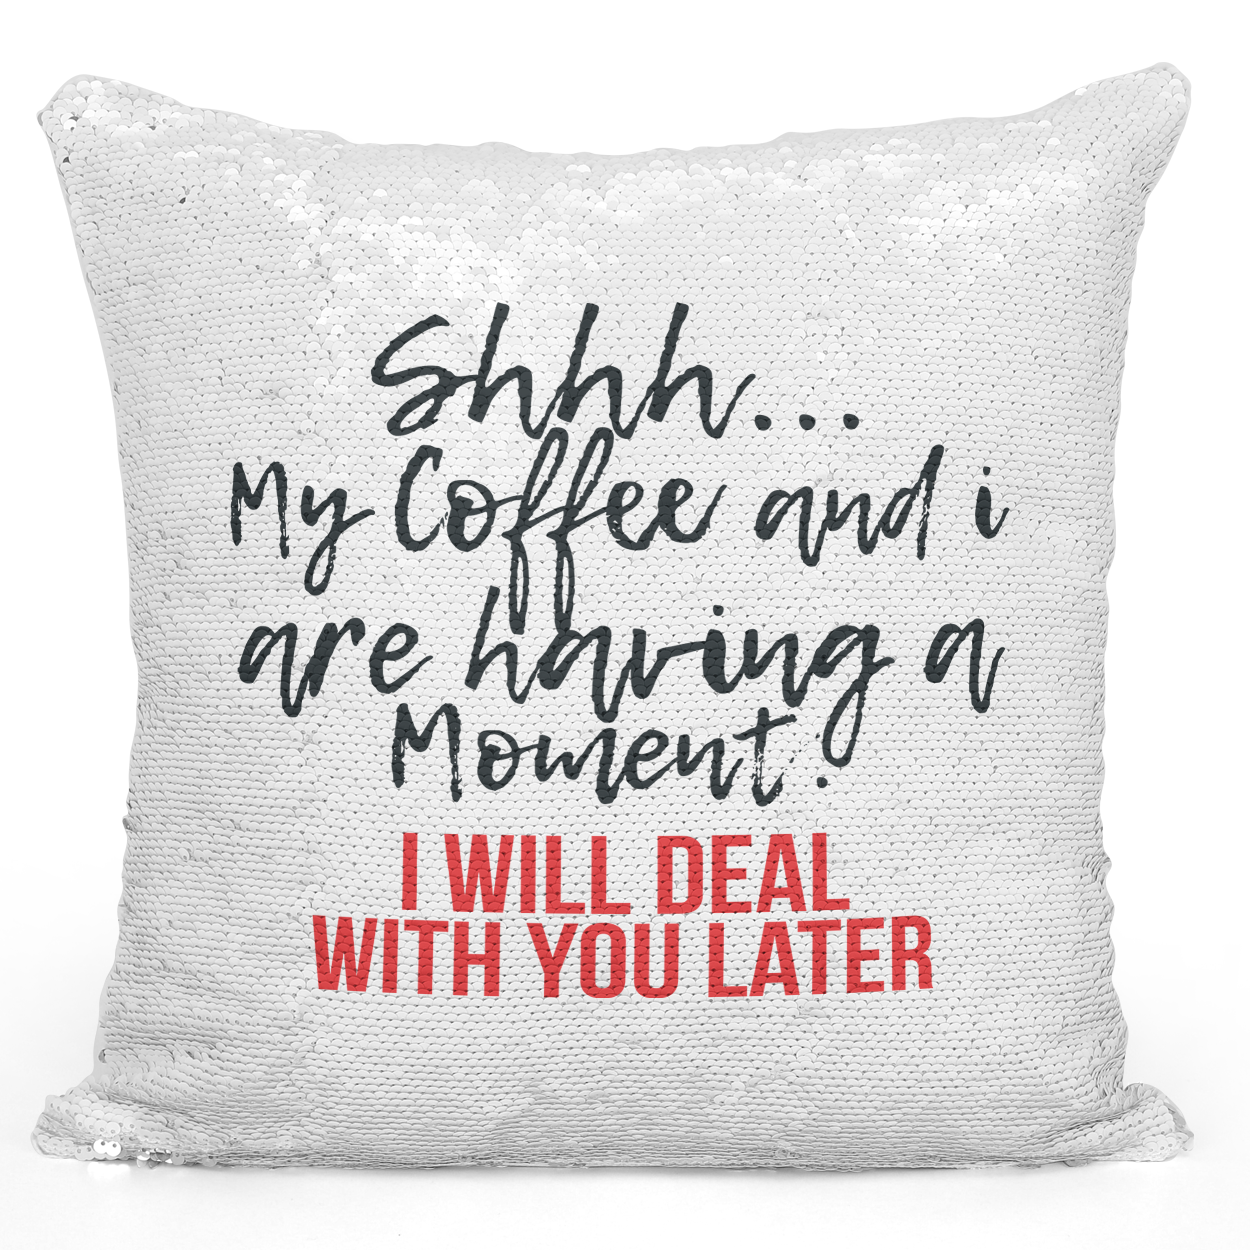 16x16 inch Sequin Throw Pillow Magic Flip Pillow Me And My Coffee Deal With You Later Funny Coffee Lovers Morning Pillows Loud Universe